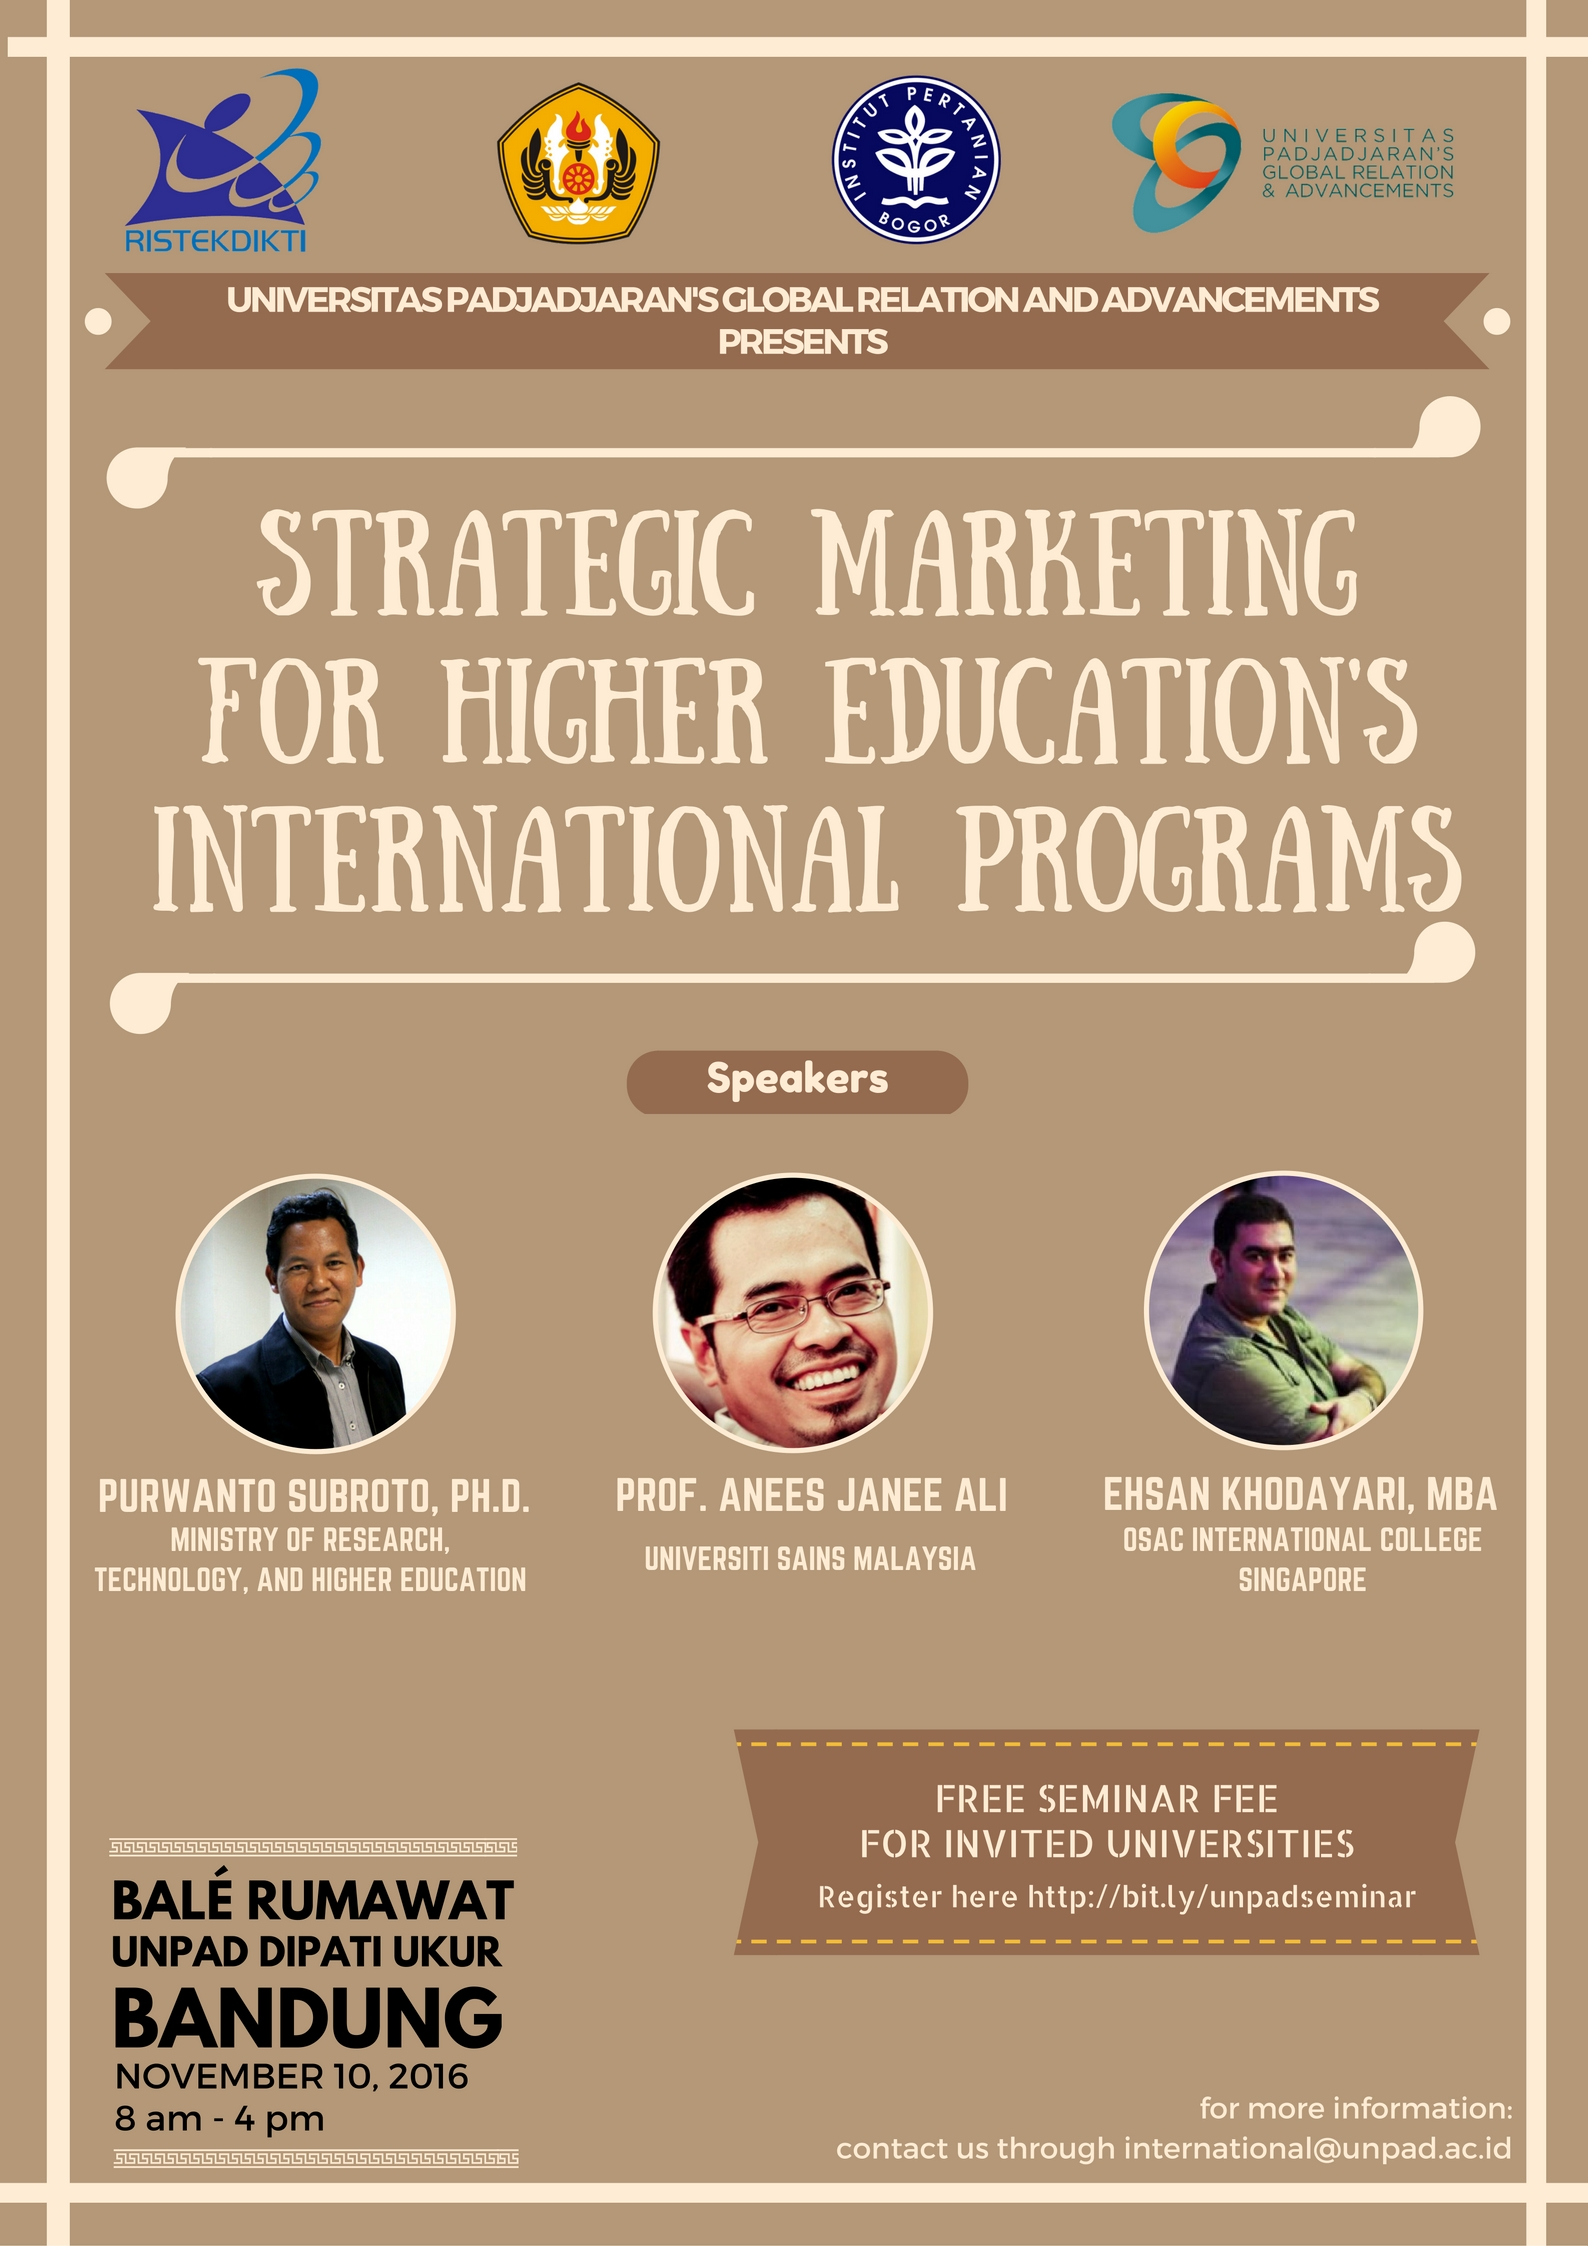 unpad-international-seminar-1